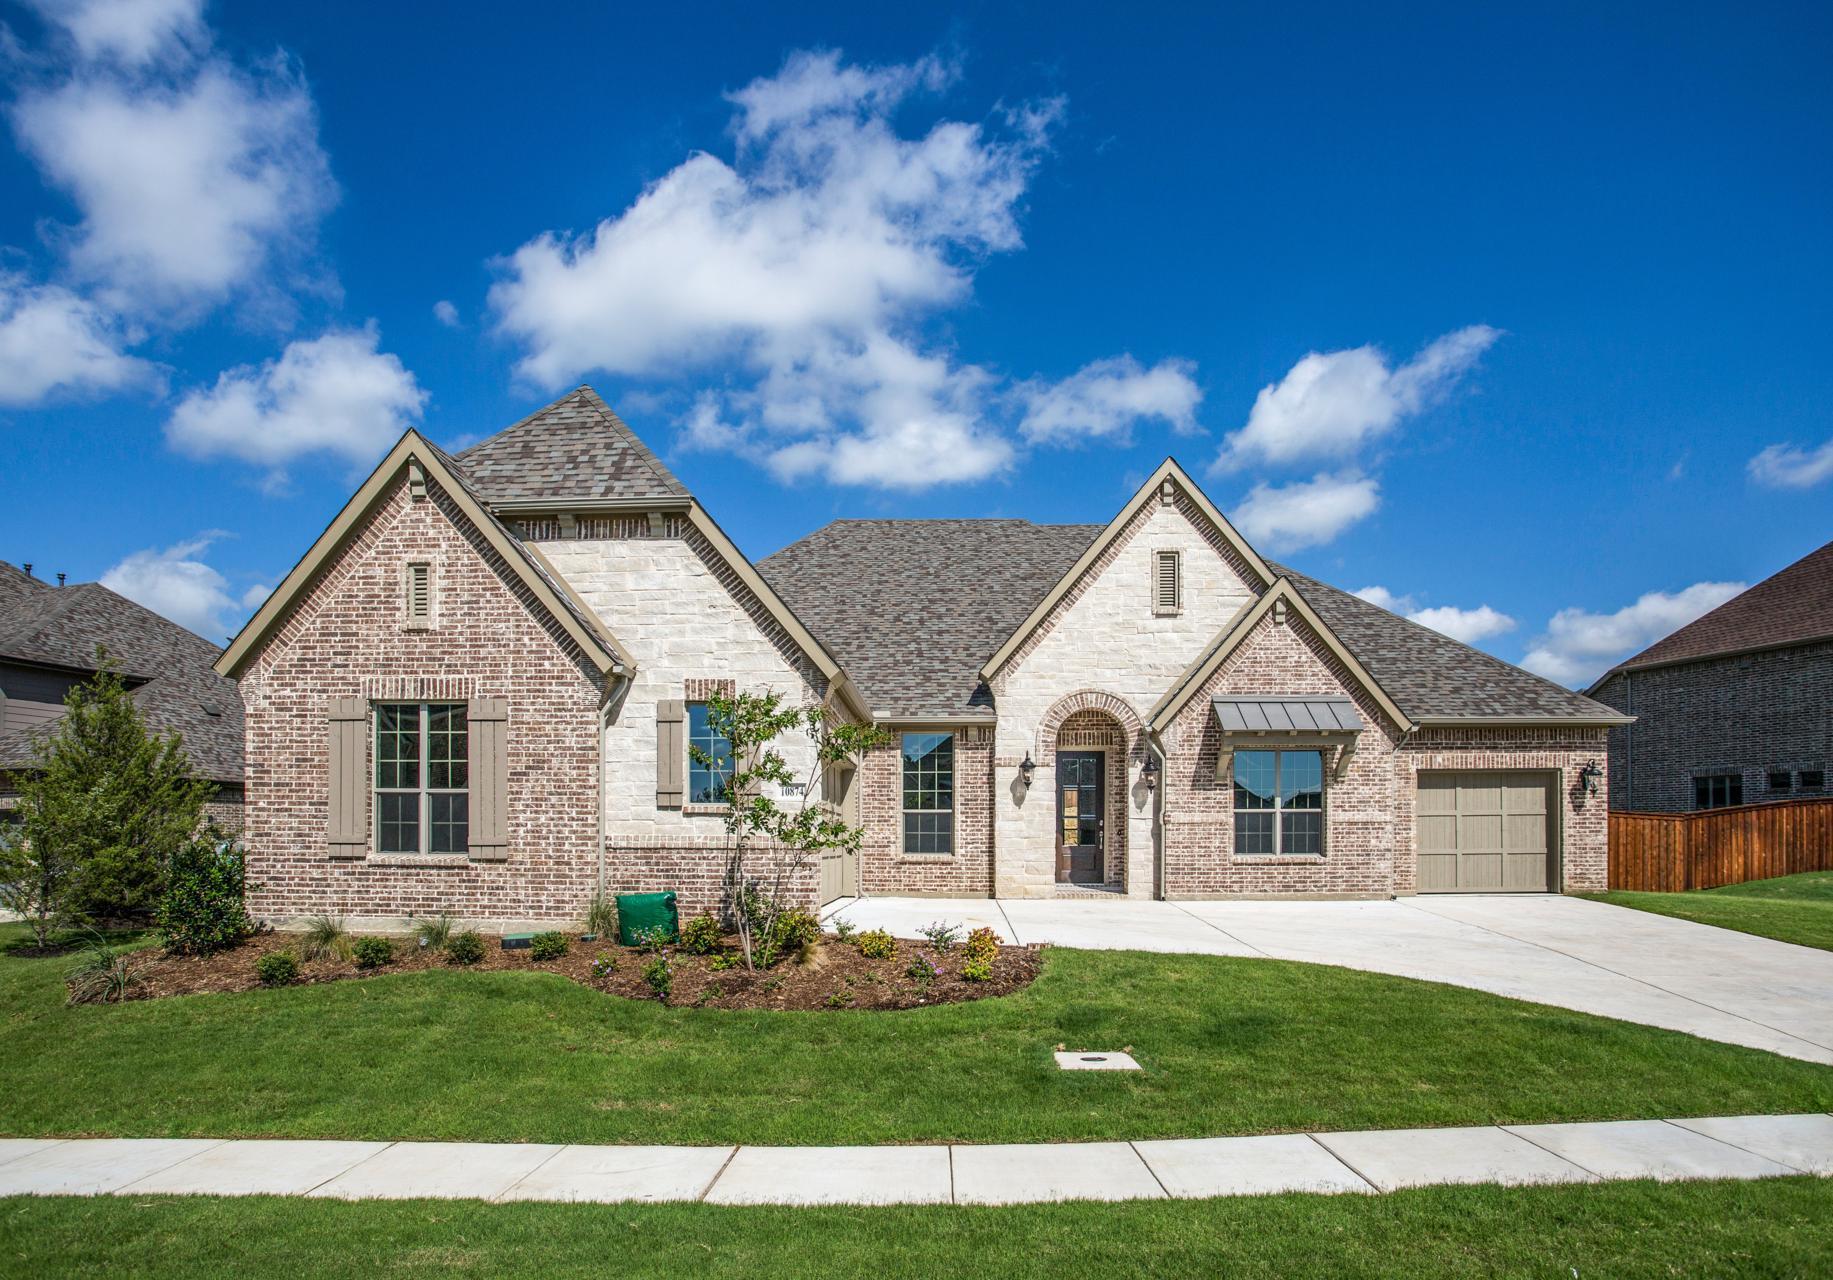 Single Family for Active at Lorenzo Iii 1004 Heather Falls Drive Rockwall, Texas 75087 United States